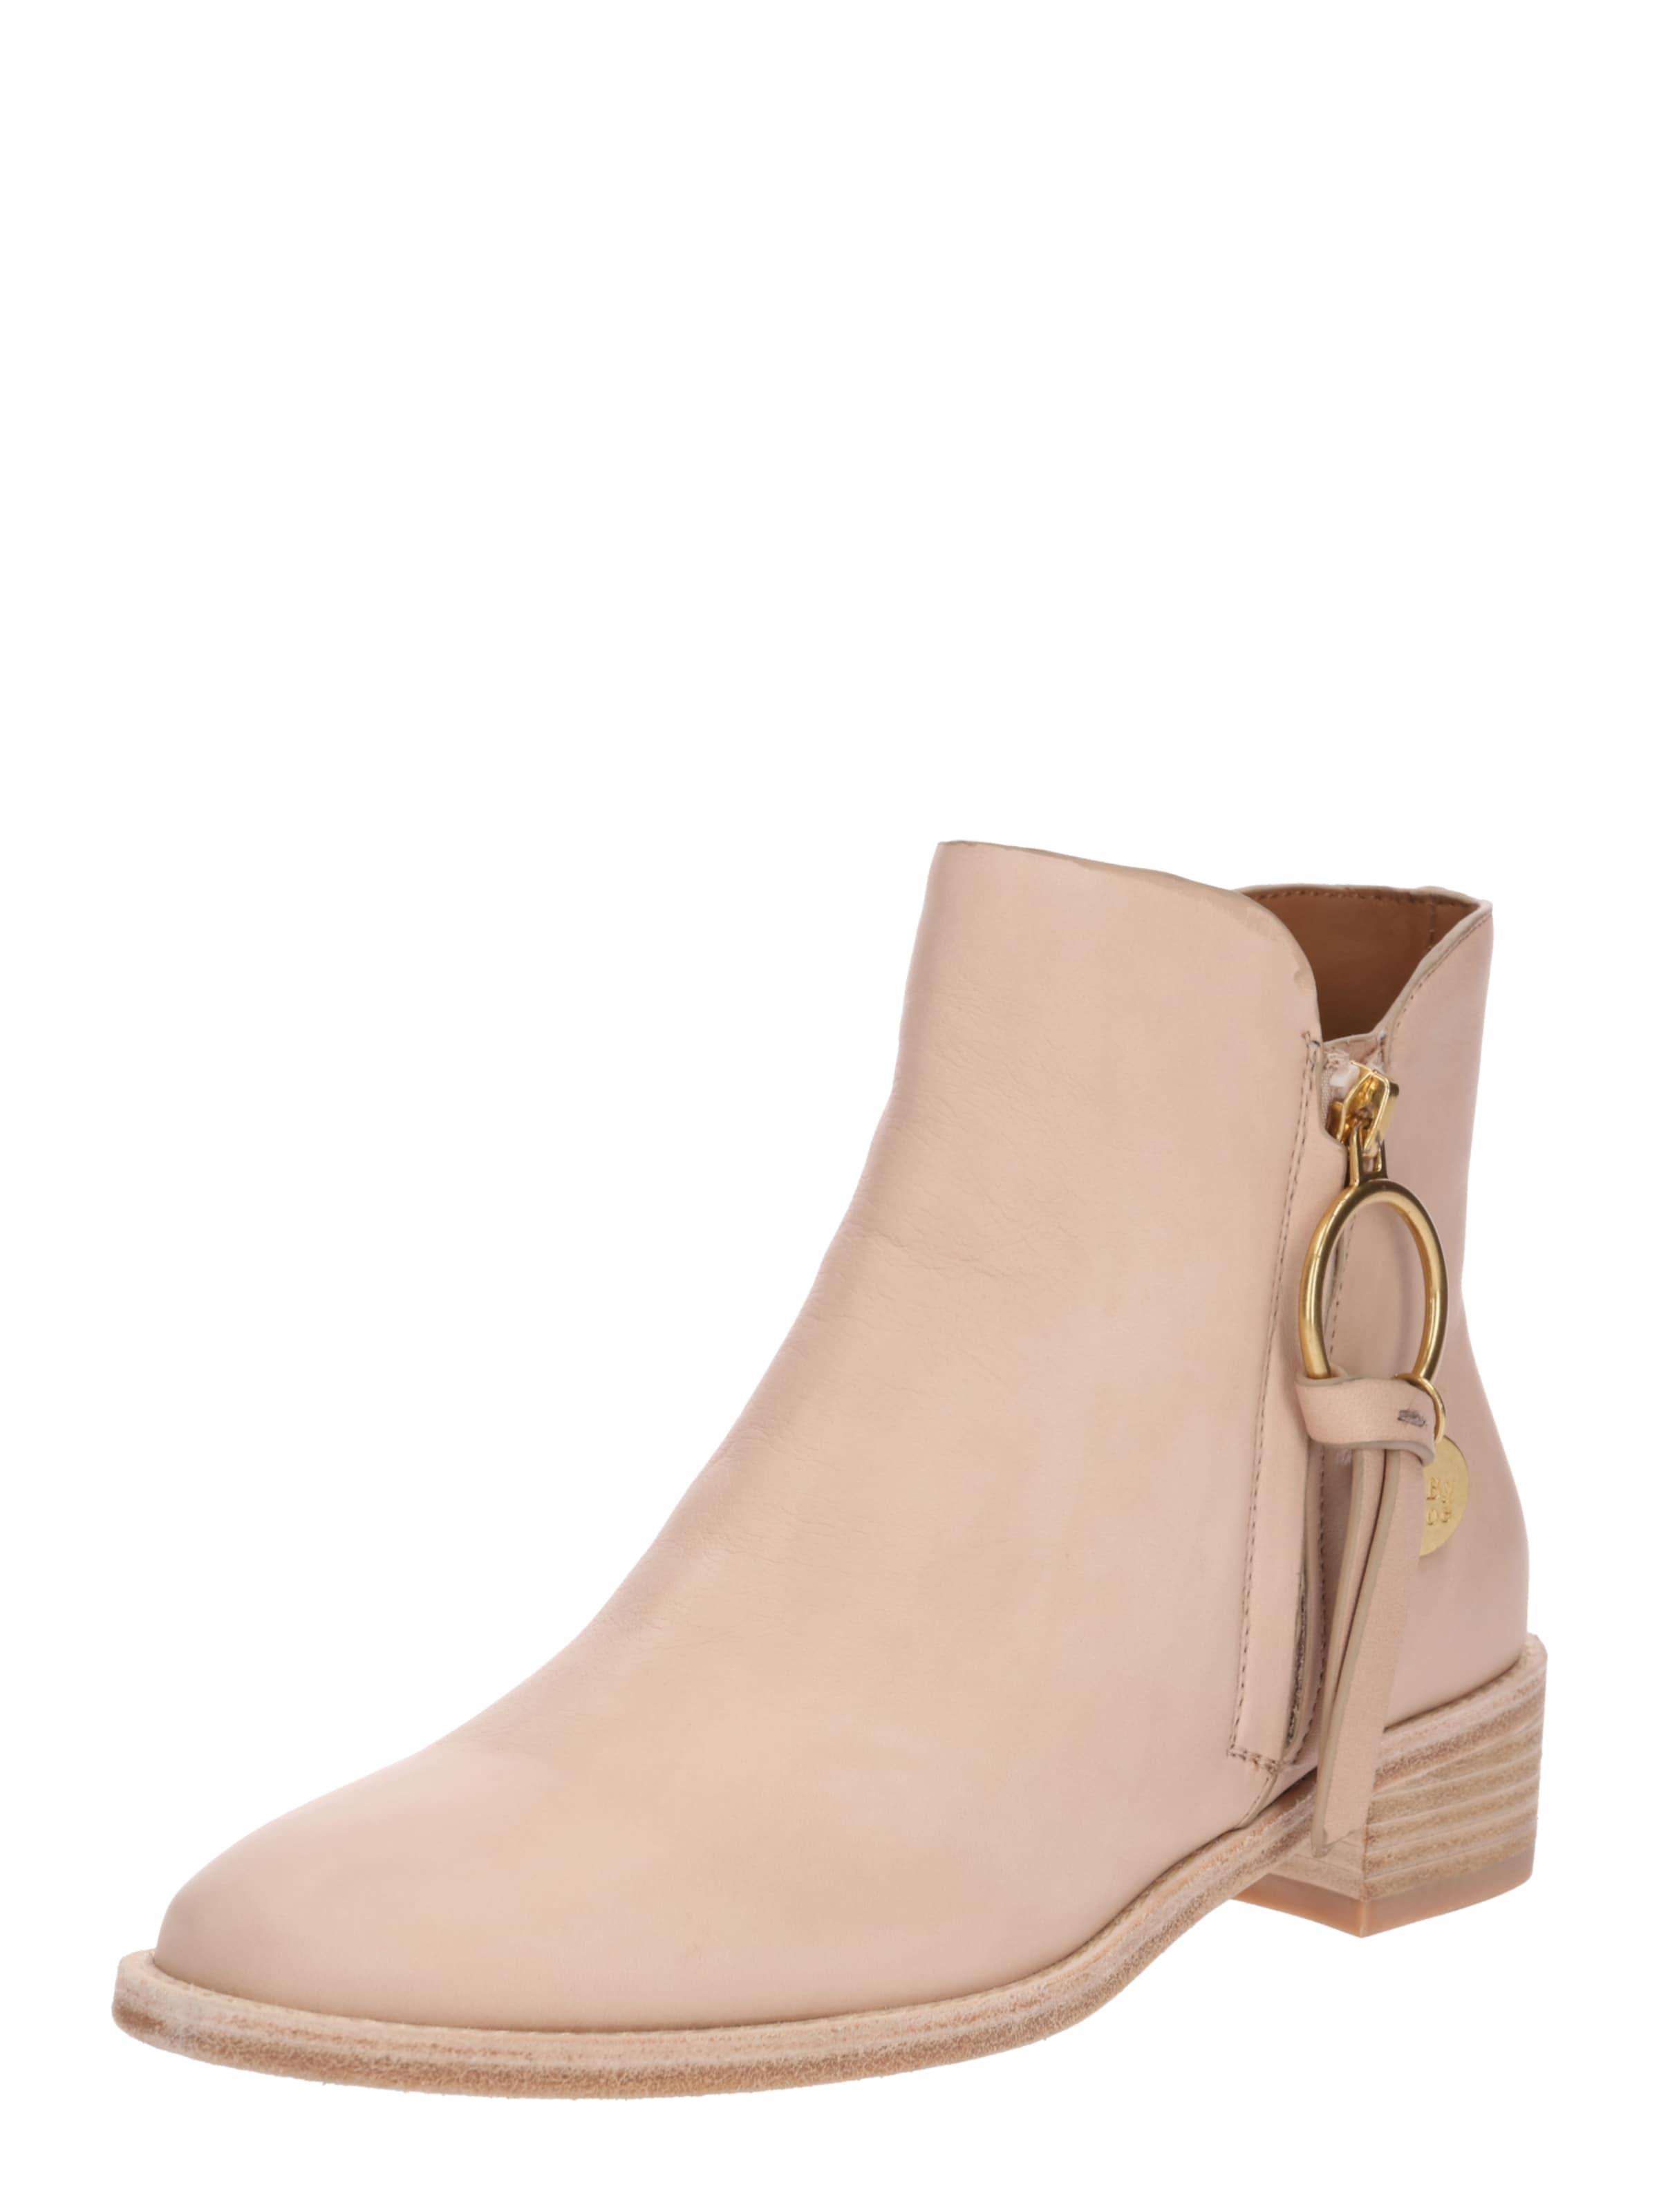 SEE BY CHLOE | | CHLOE Ankle Boots 9b91c1